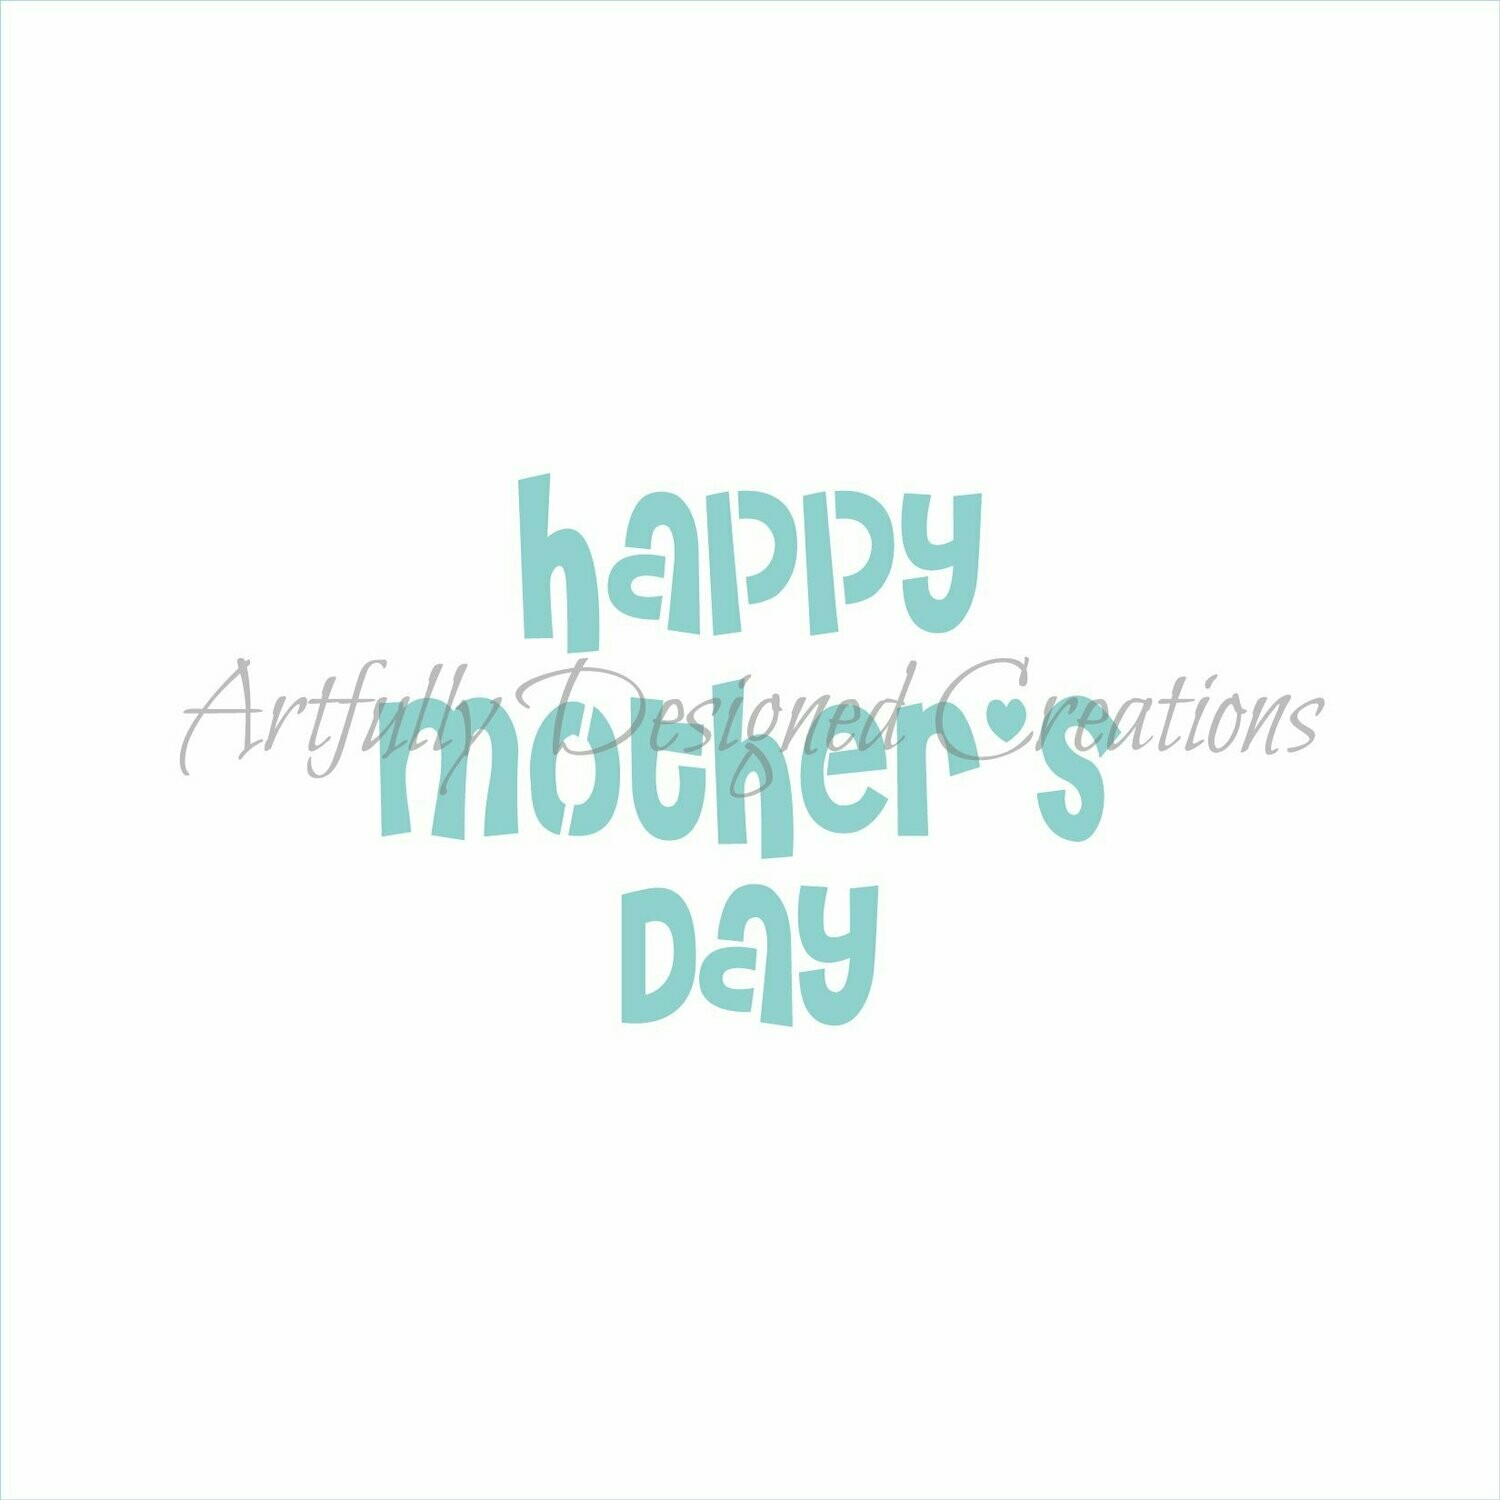 AD Happy Mother's Day Stencil